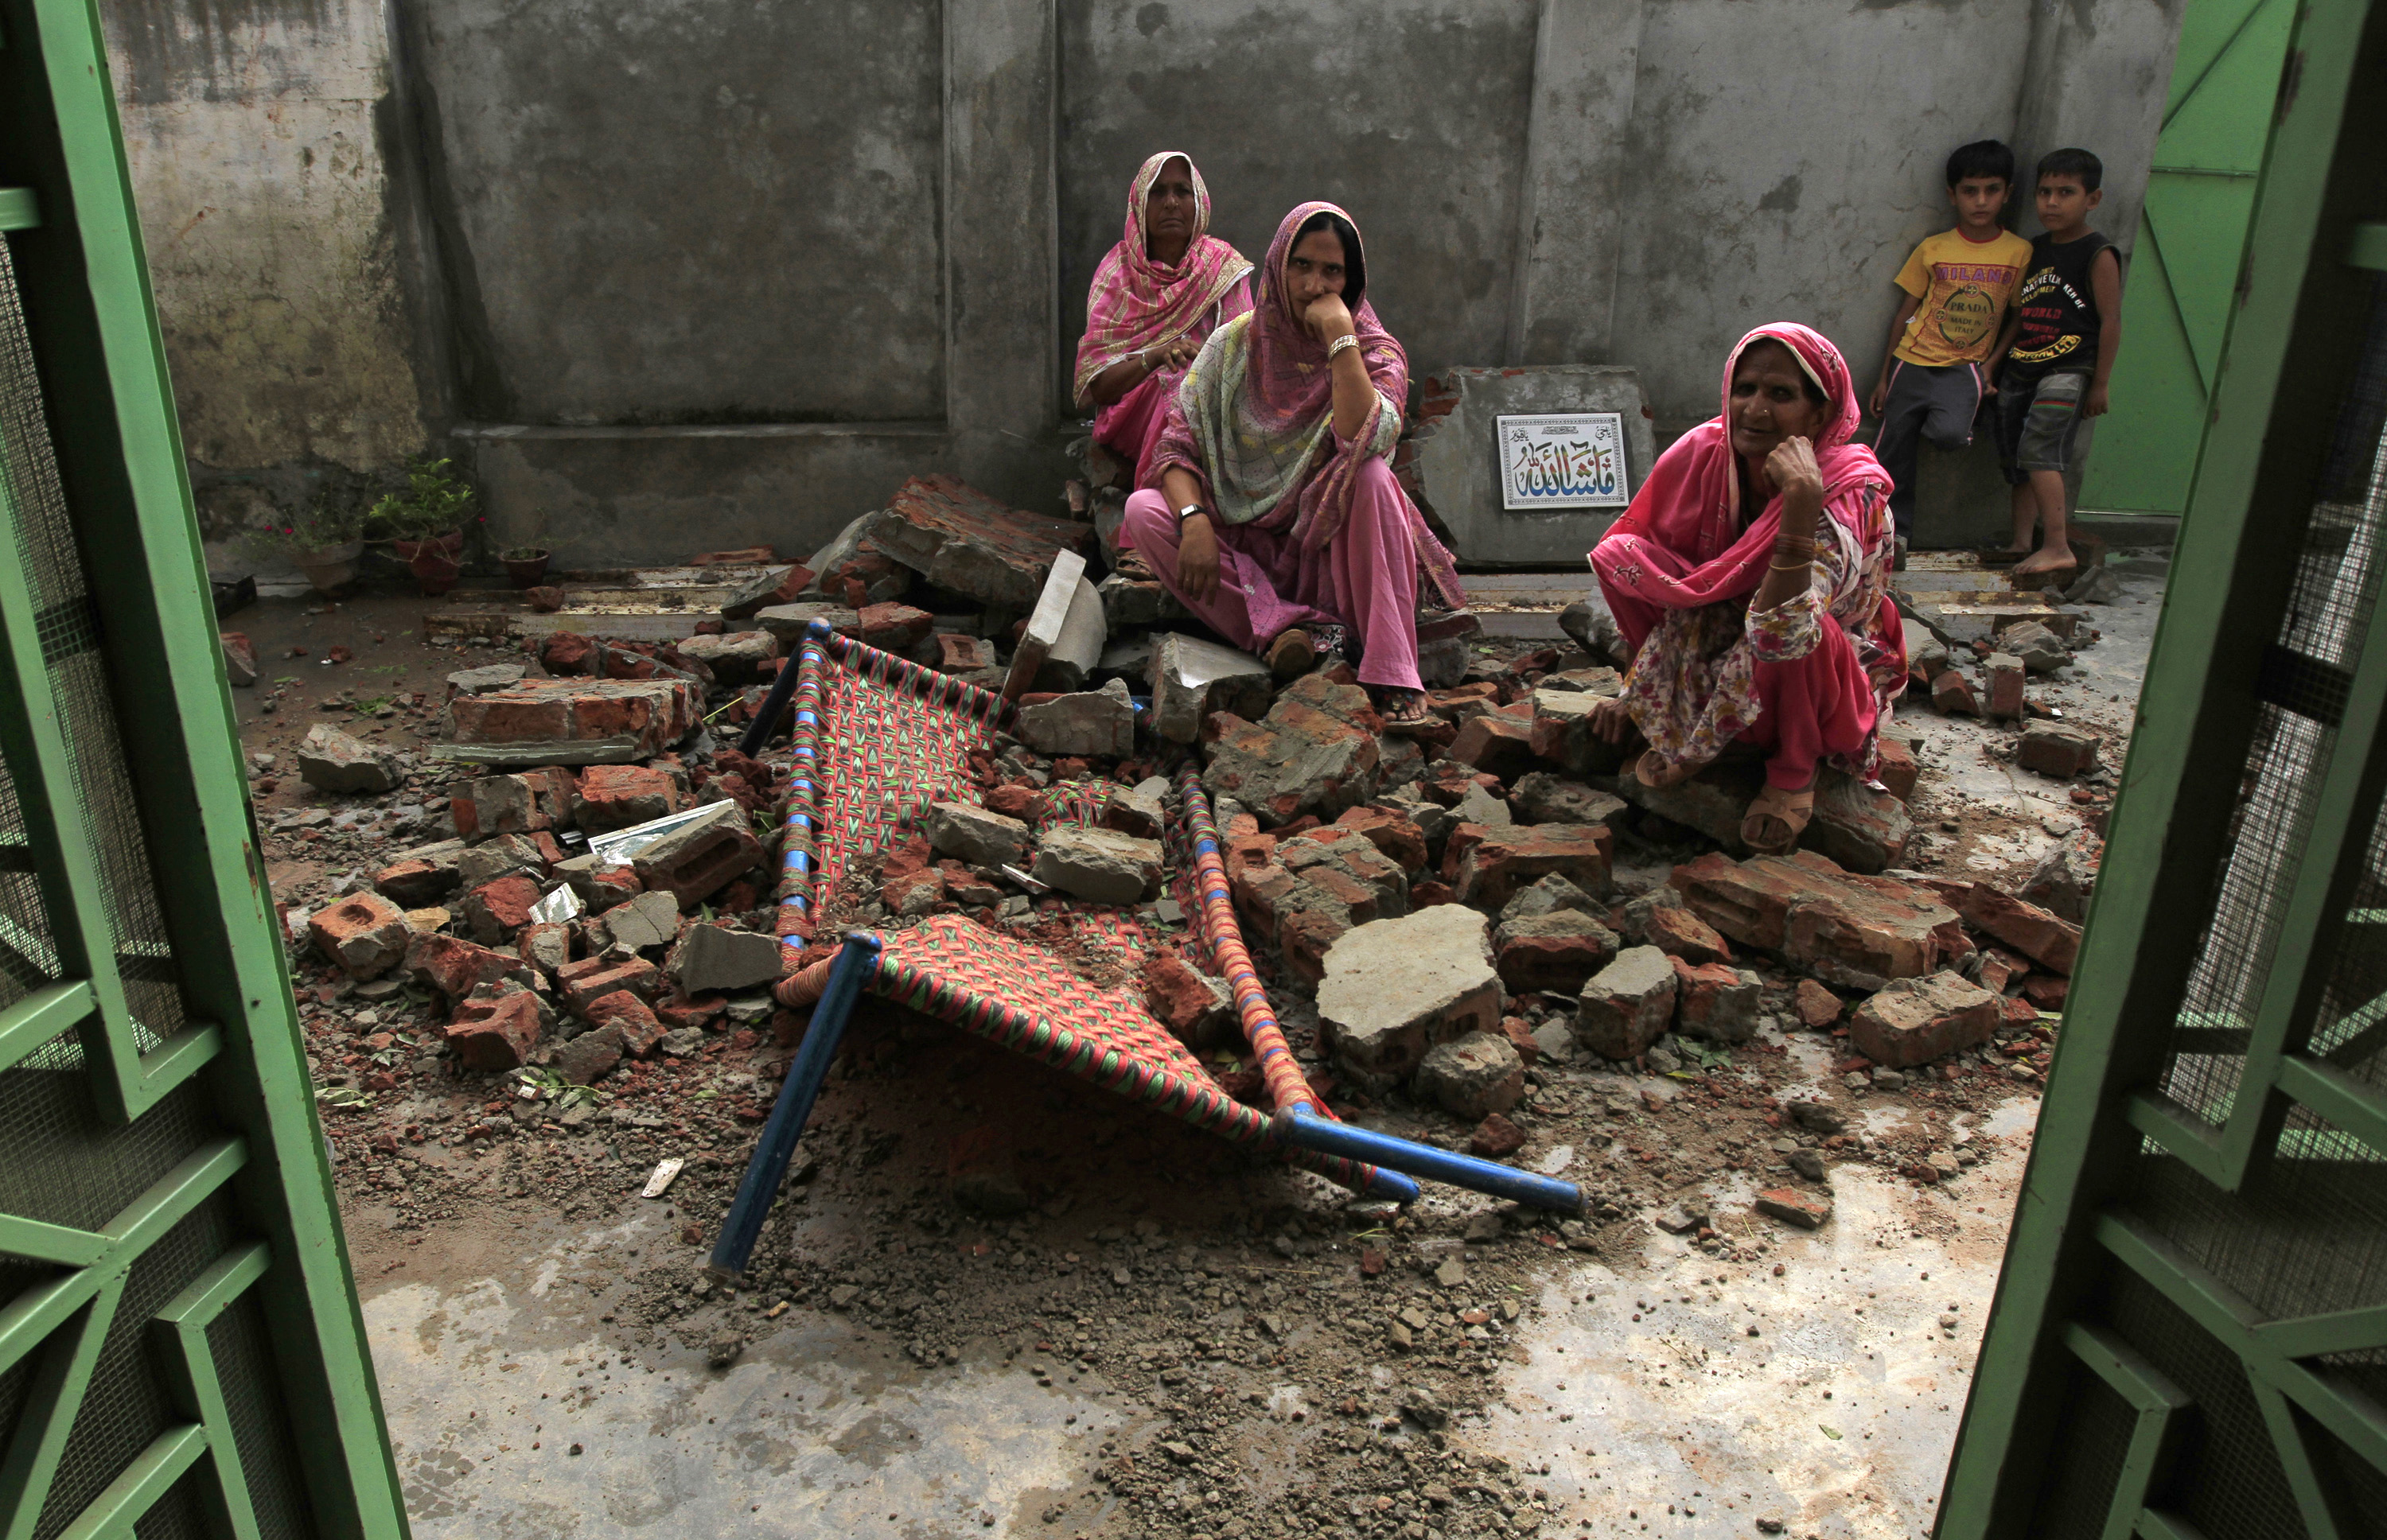 Villagers sit on the debris of their house after it was damaged during the recent exchange of fire between Pakistan and India at the Pakistani border town of Dhamala Hakimwala on Oct. 8, 2014